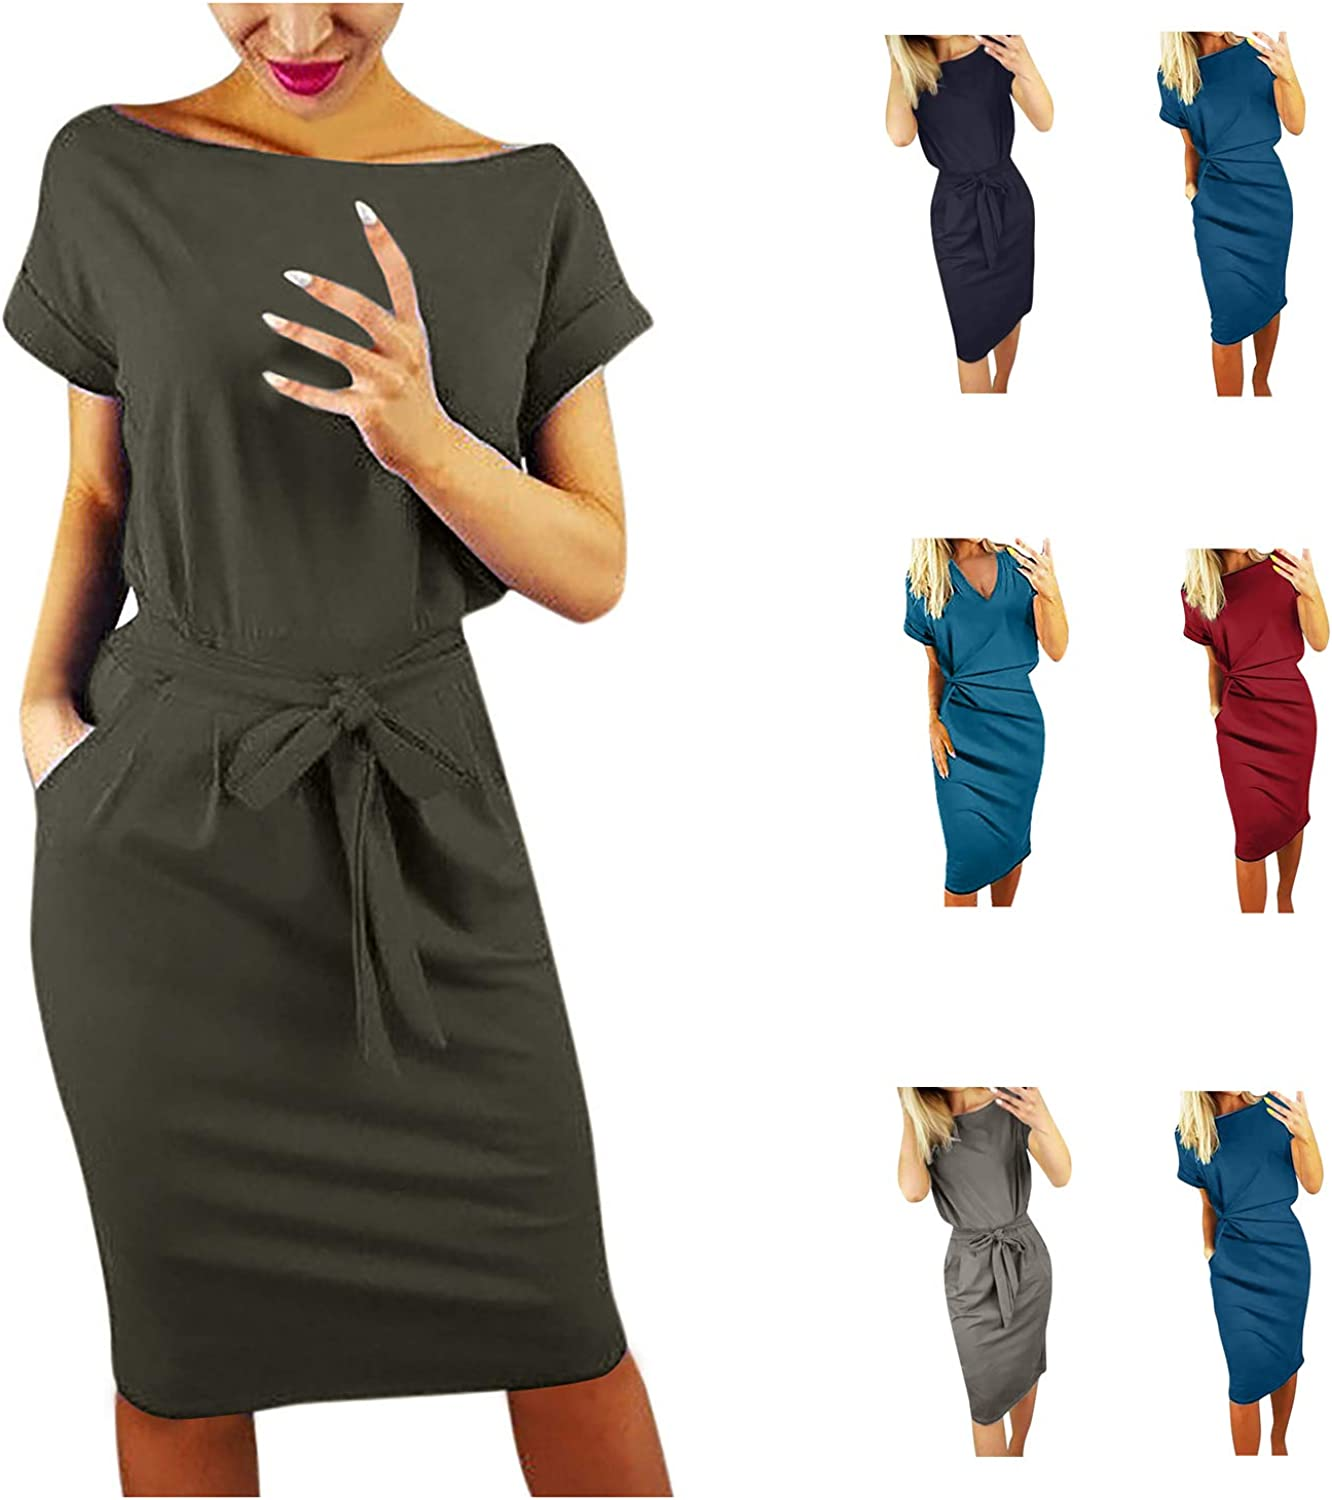 MINGE Women's Sexy Basic Crewneck Belted Office Dress with Pockets Solid Color Short Sleeve Party Slim Dress